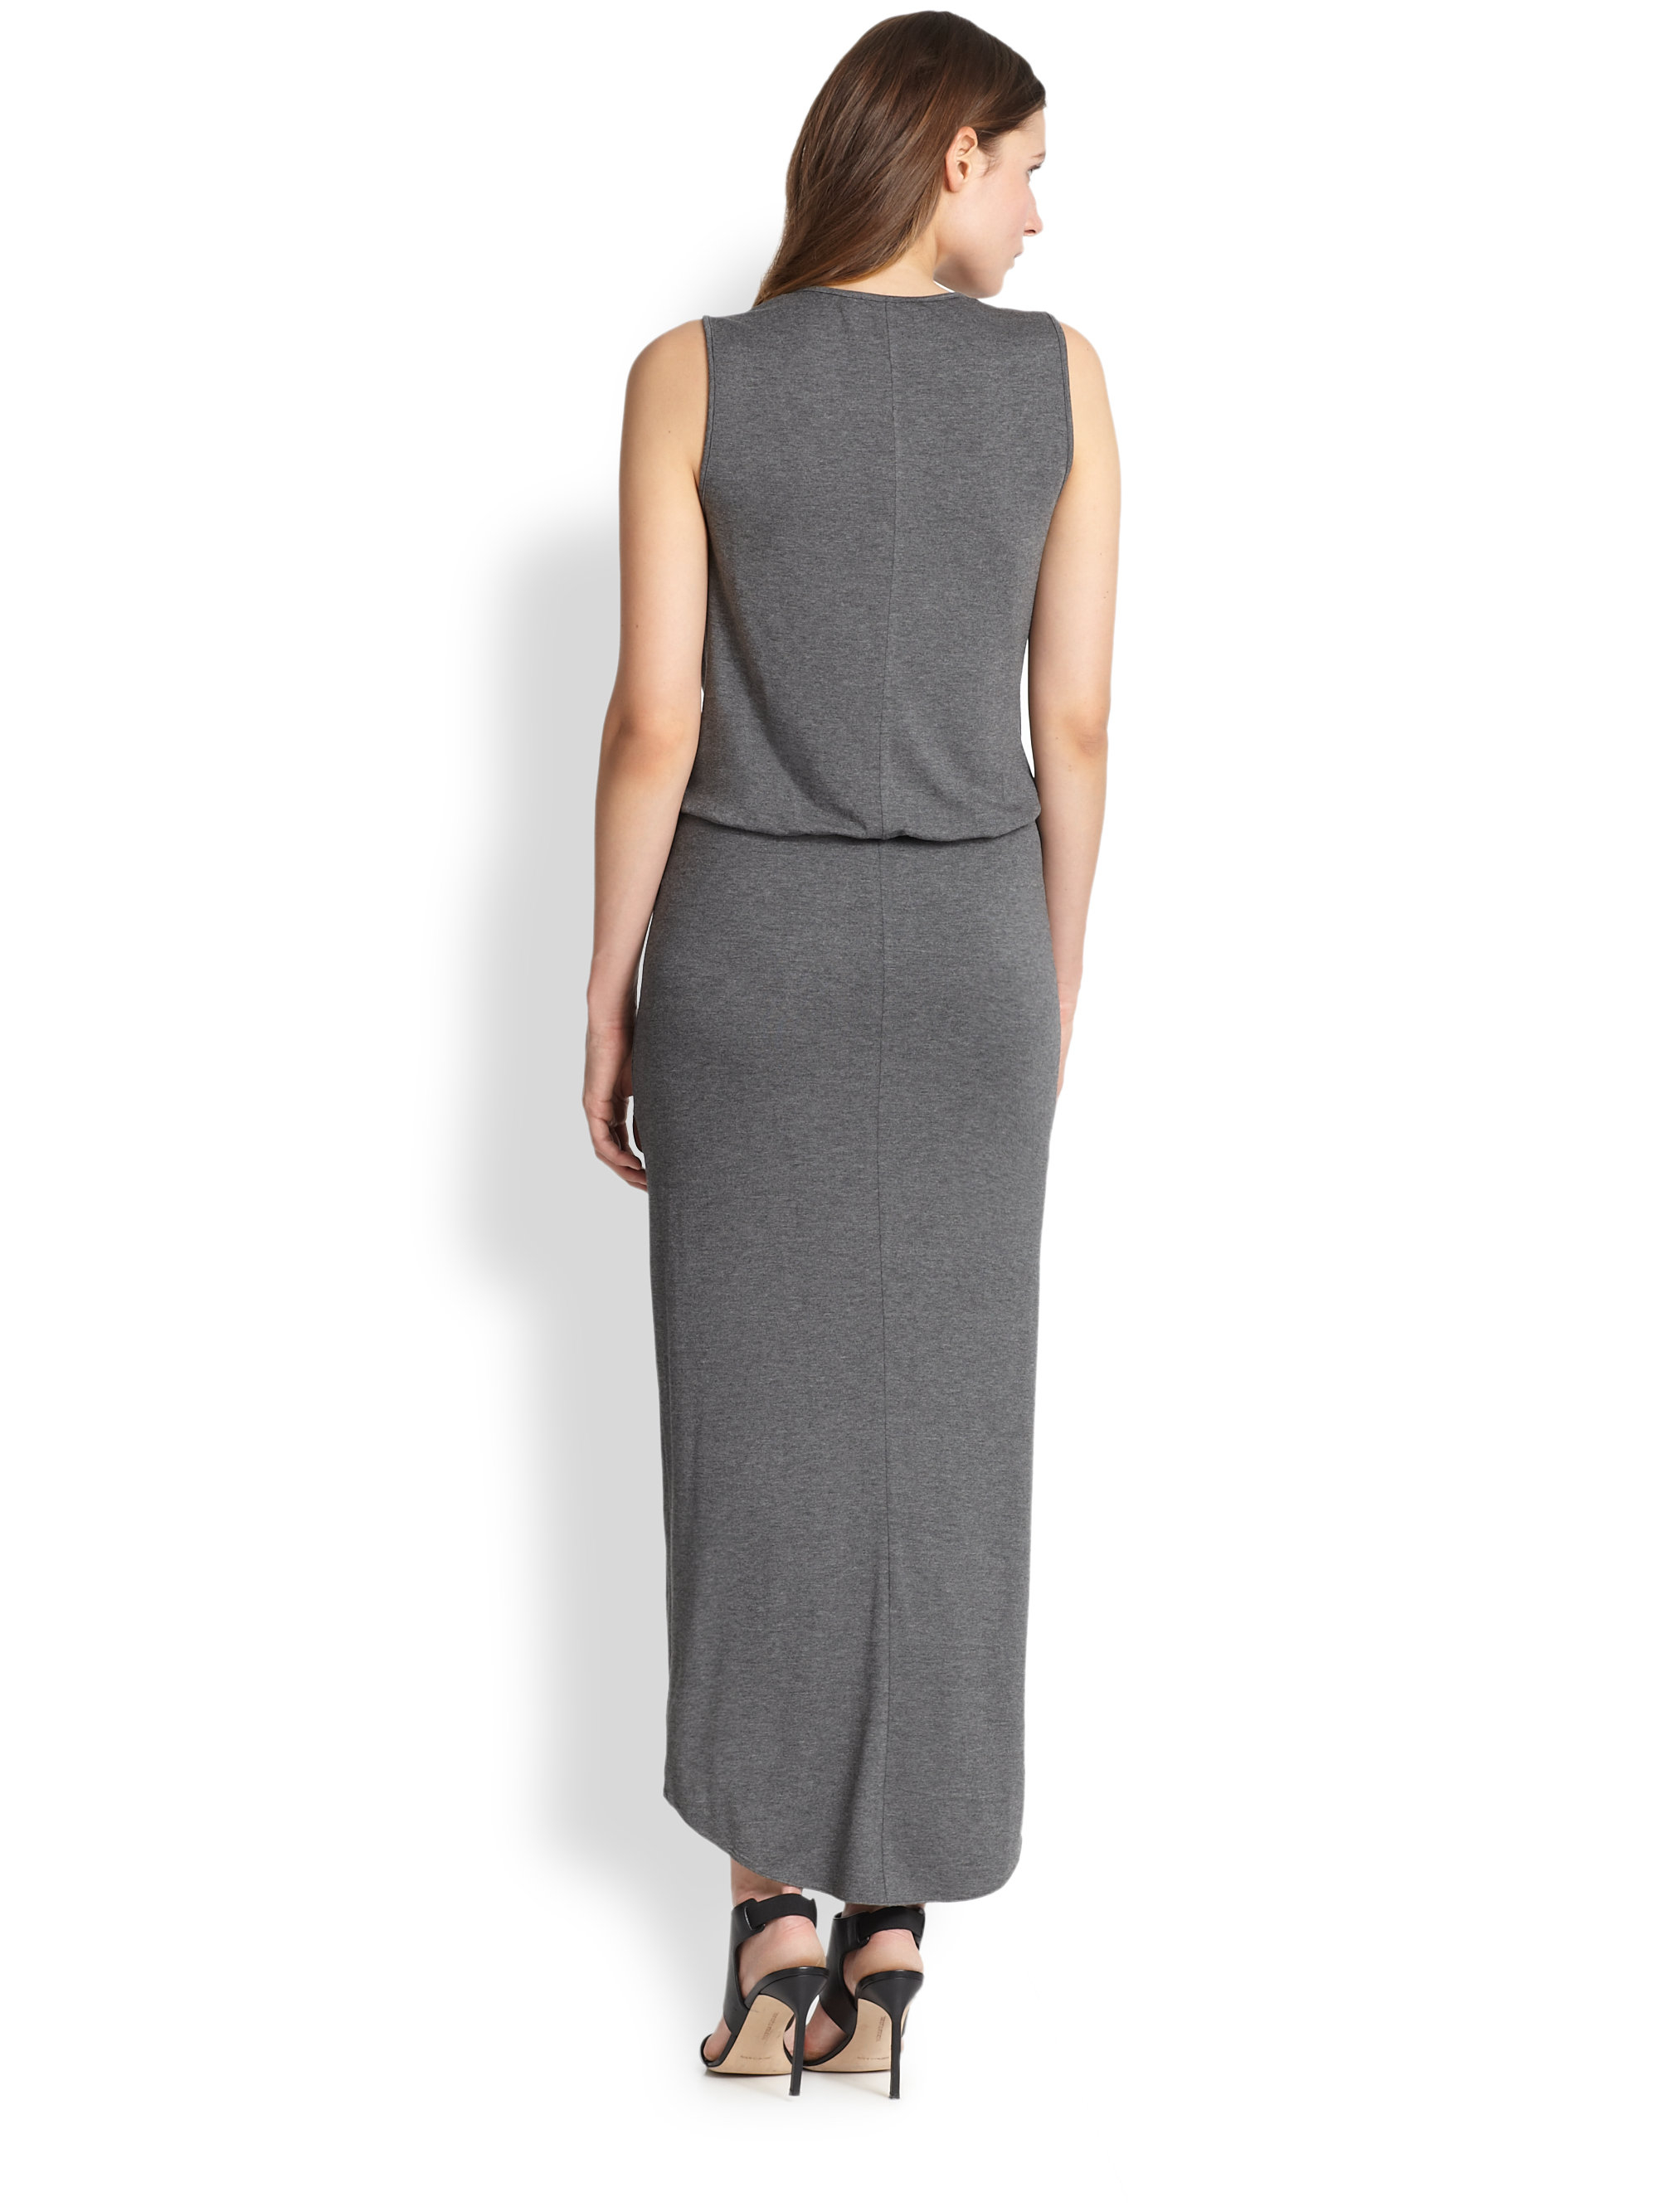 Lyst - Elizabeth And James Marine Asymmetrical Knotted Stretch ...